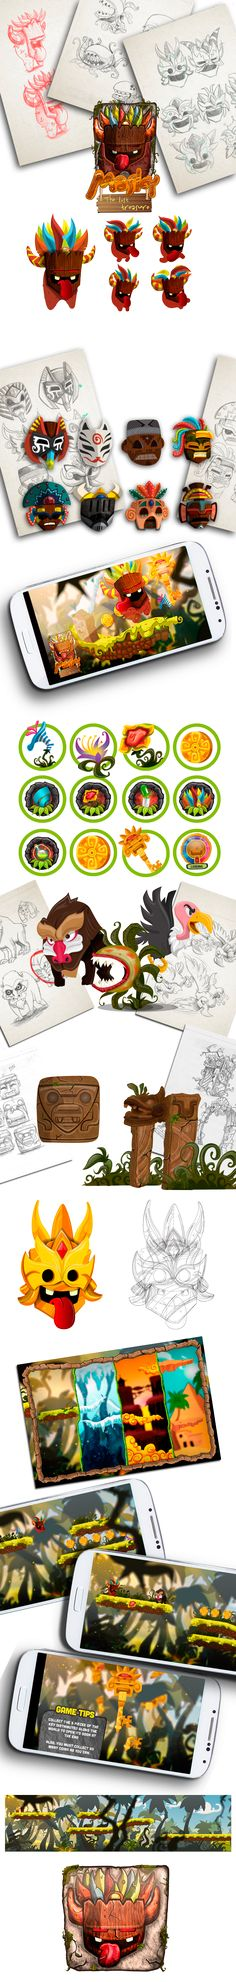 Masky Game on Behance